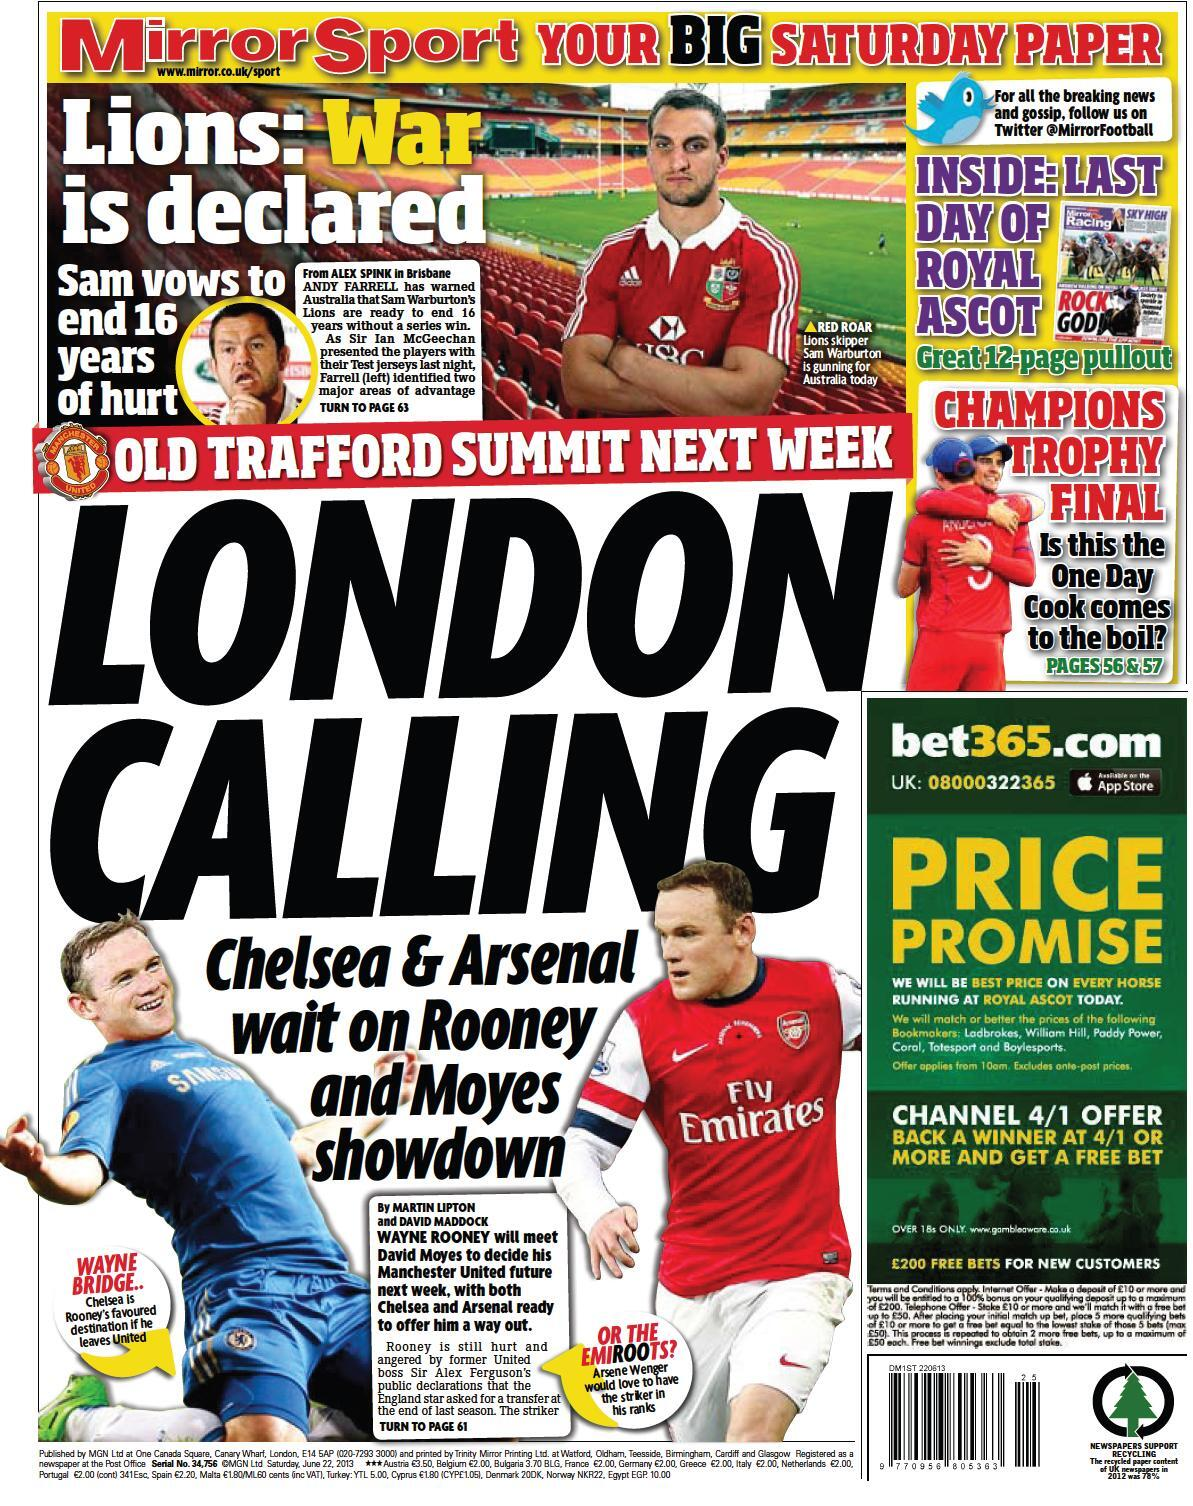 Arsenal & Chelsea fight for sign Wayne Rooney from Man United [Star & Mirror]